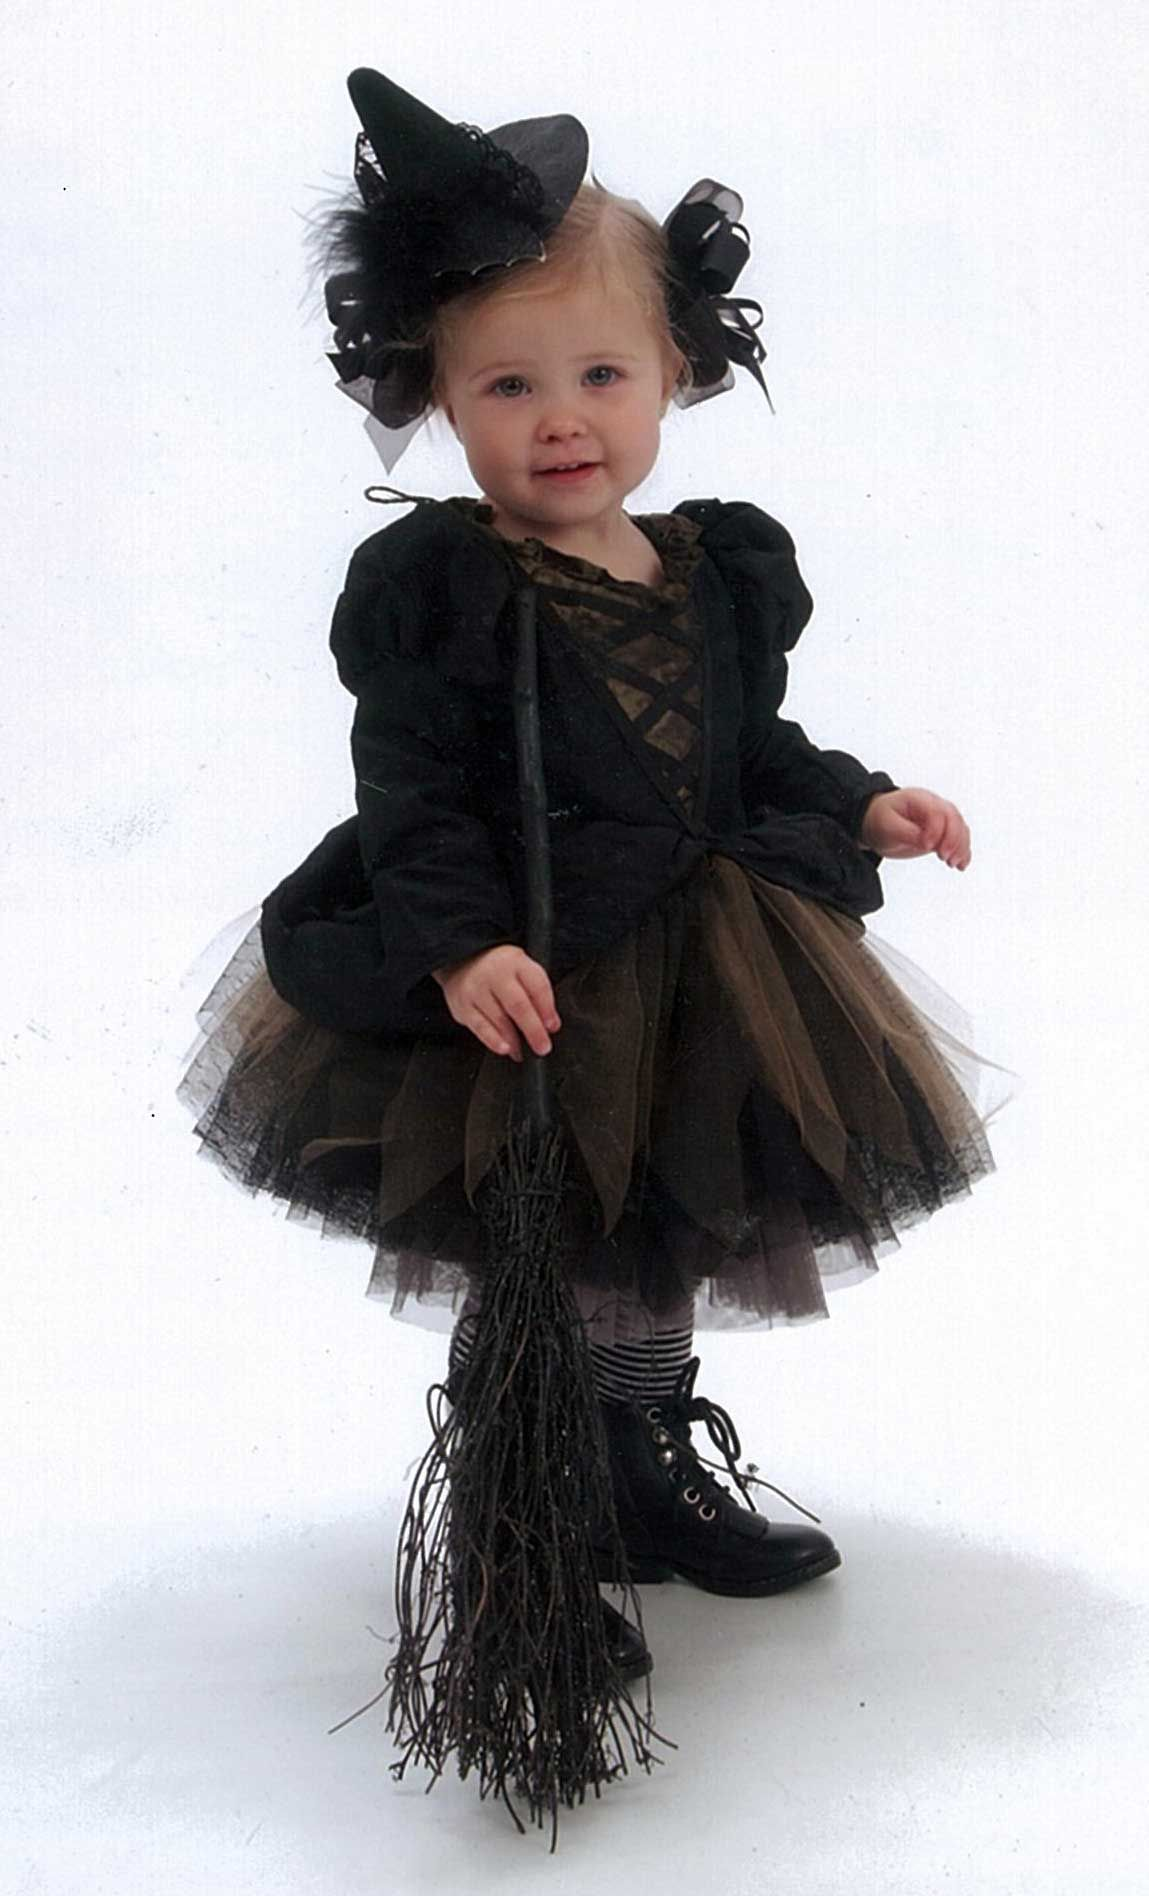 Like the hat and the black bows | Sewing - Dress Up | Pinterest ...